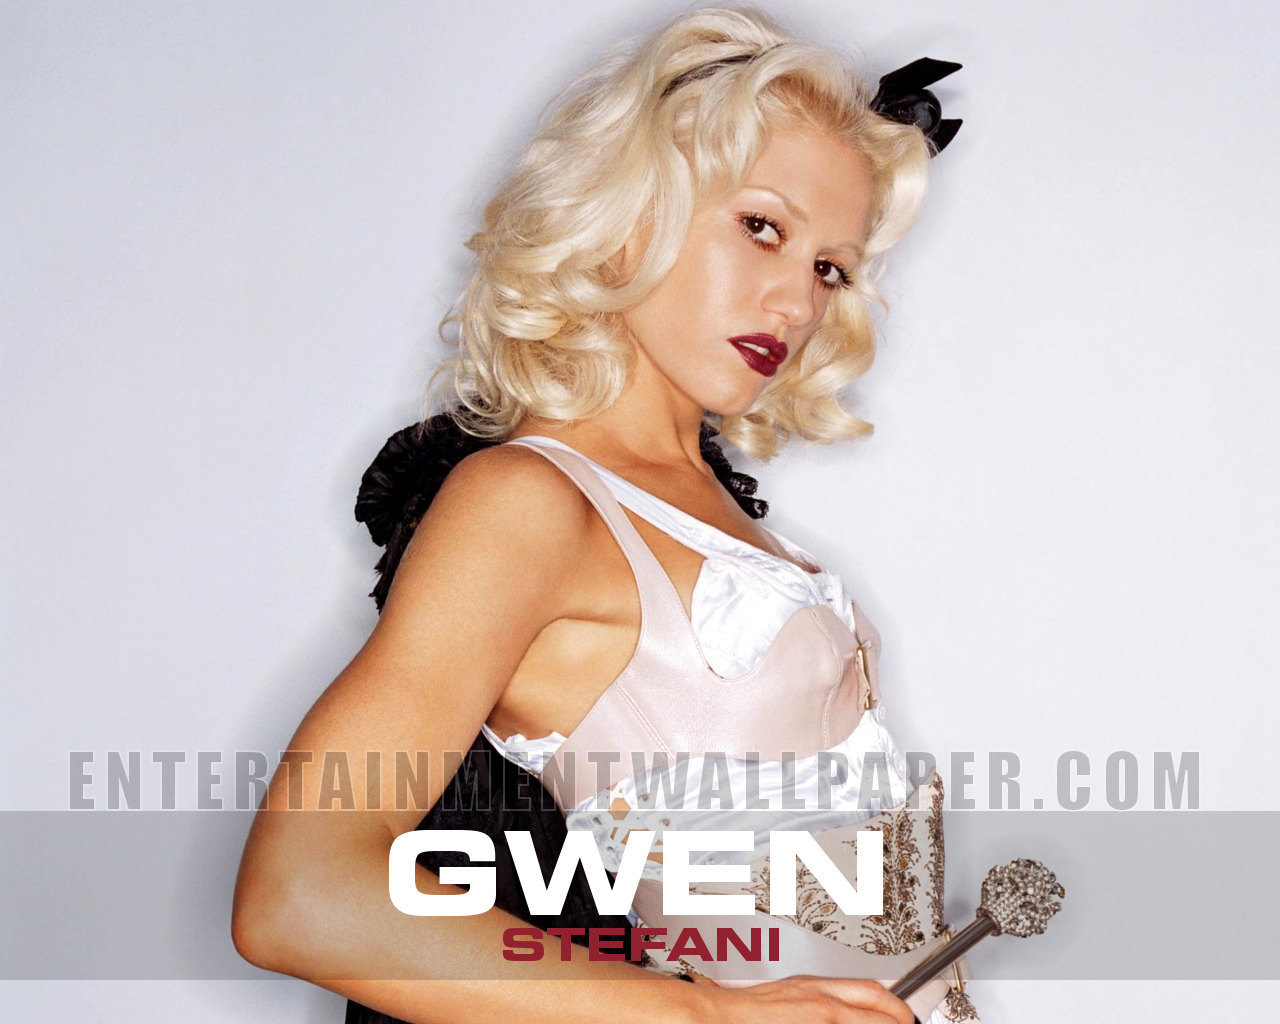 gwen stefani wallpaper cool - photo #12